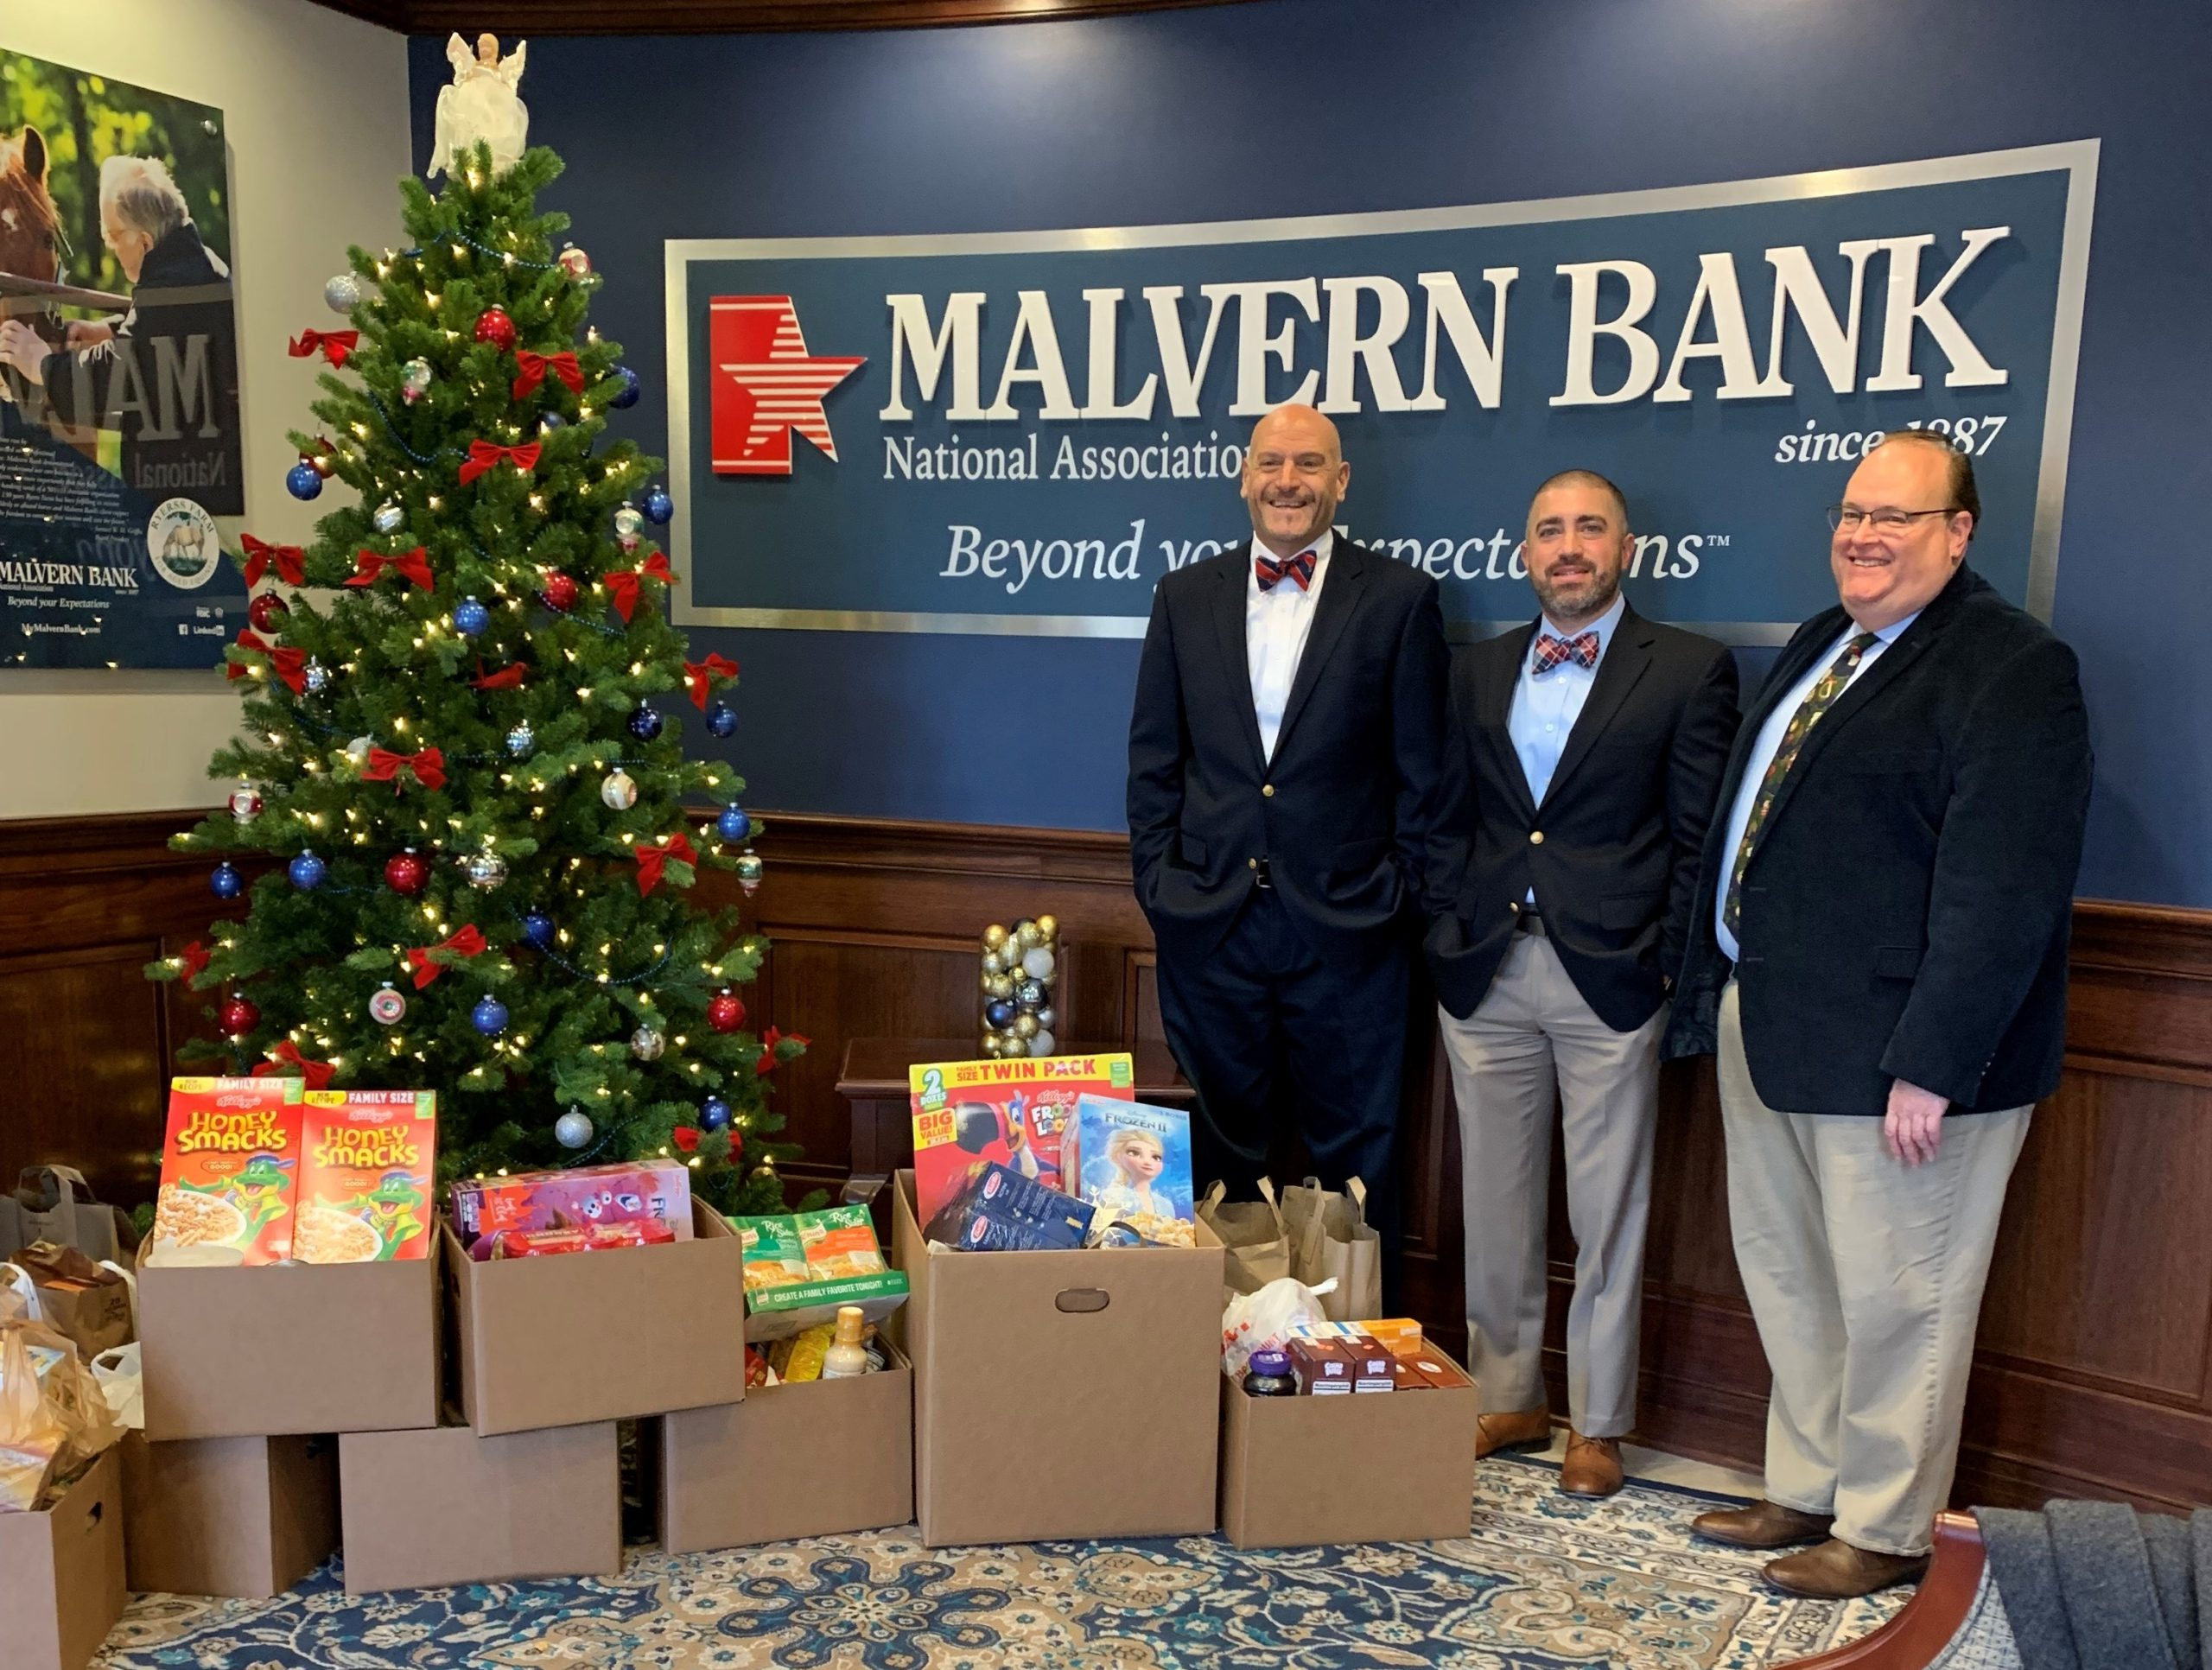 Malvern Bank's Annual Food Drive Collects 284 Pounds of Food for West Chester Food Cupboard